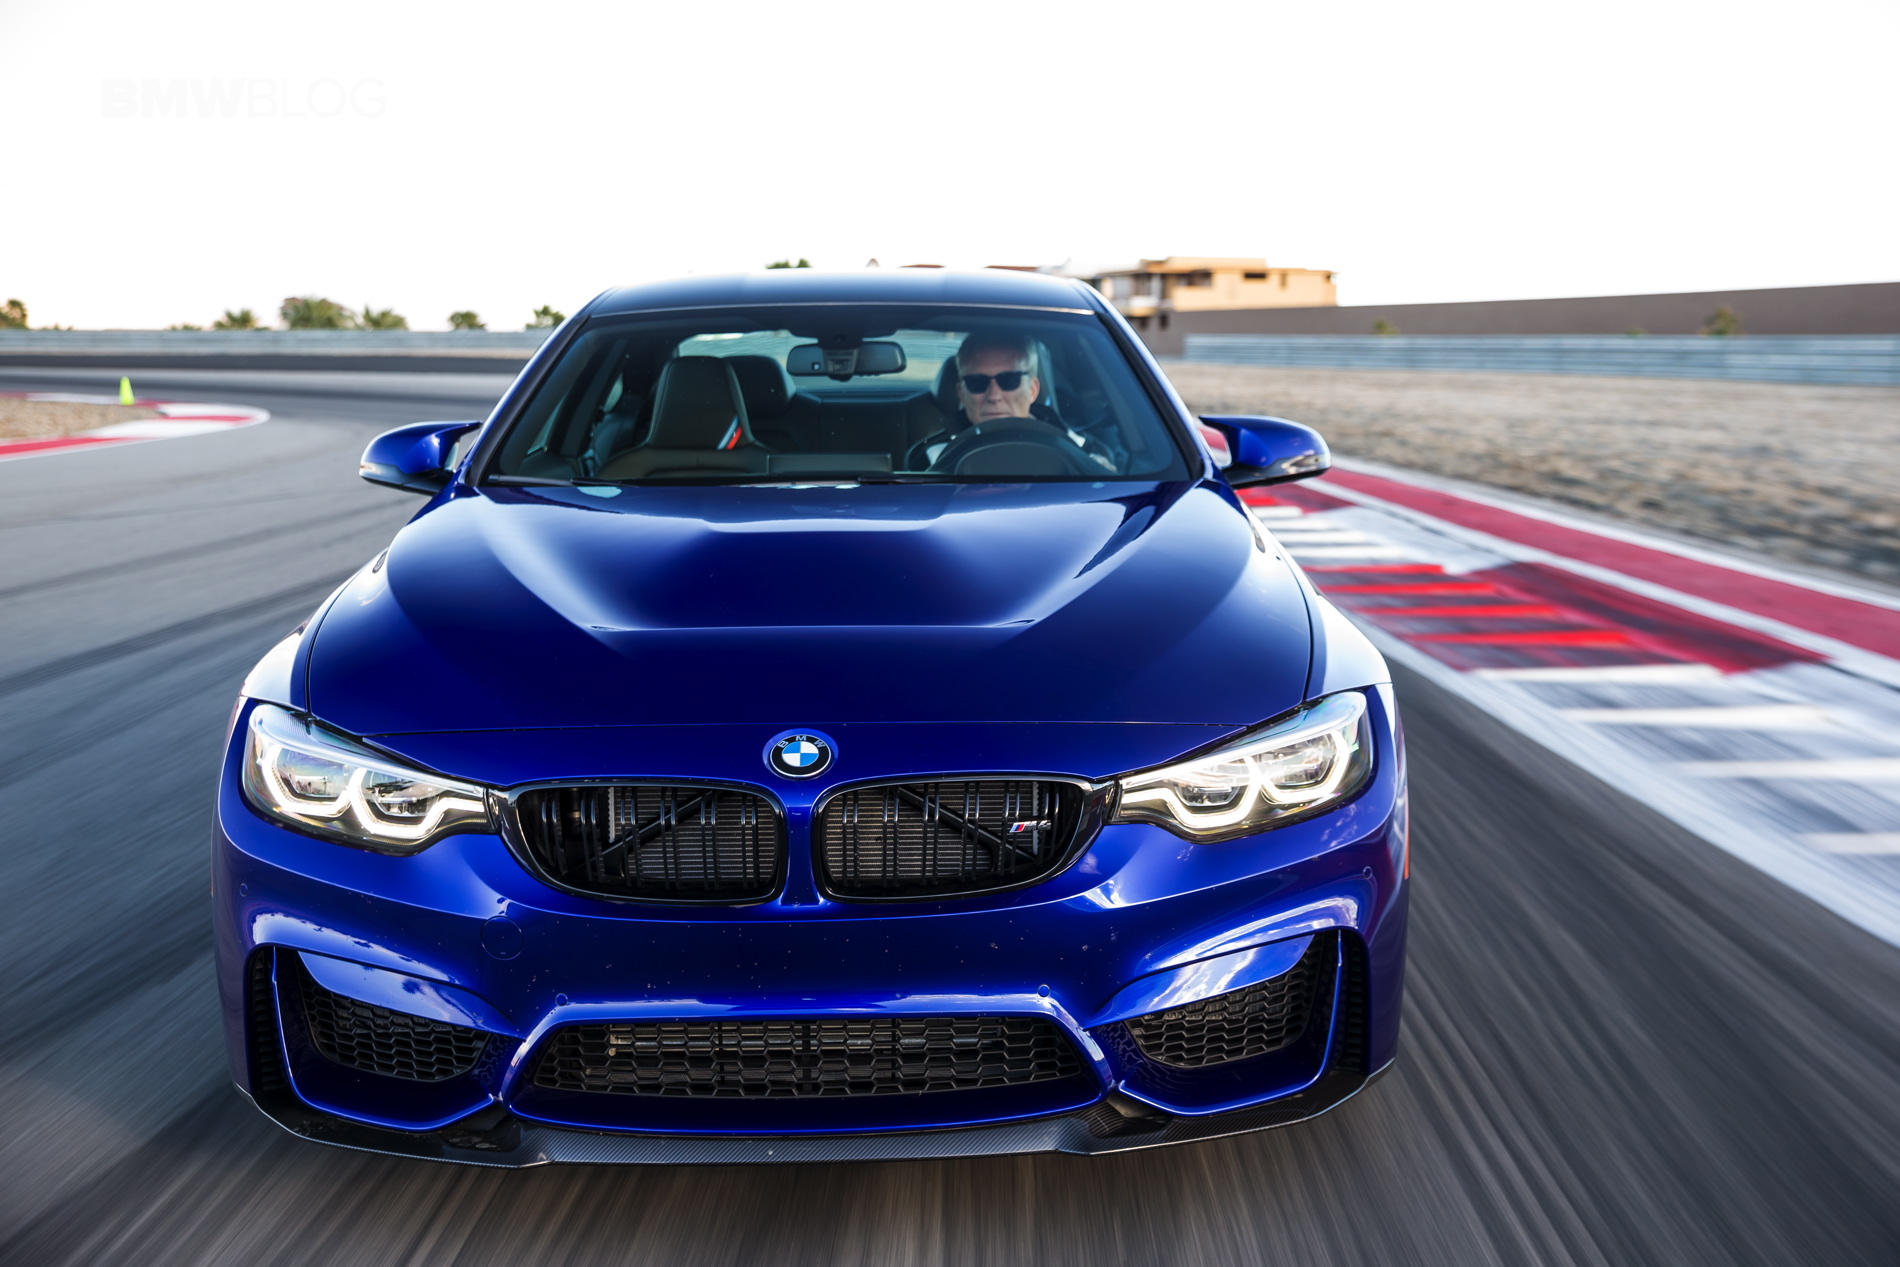 2018 BMW M4 CS Photo Gallery 38